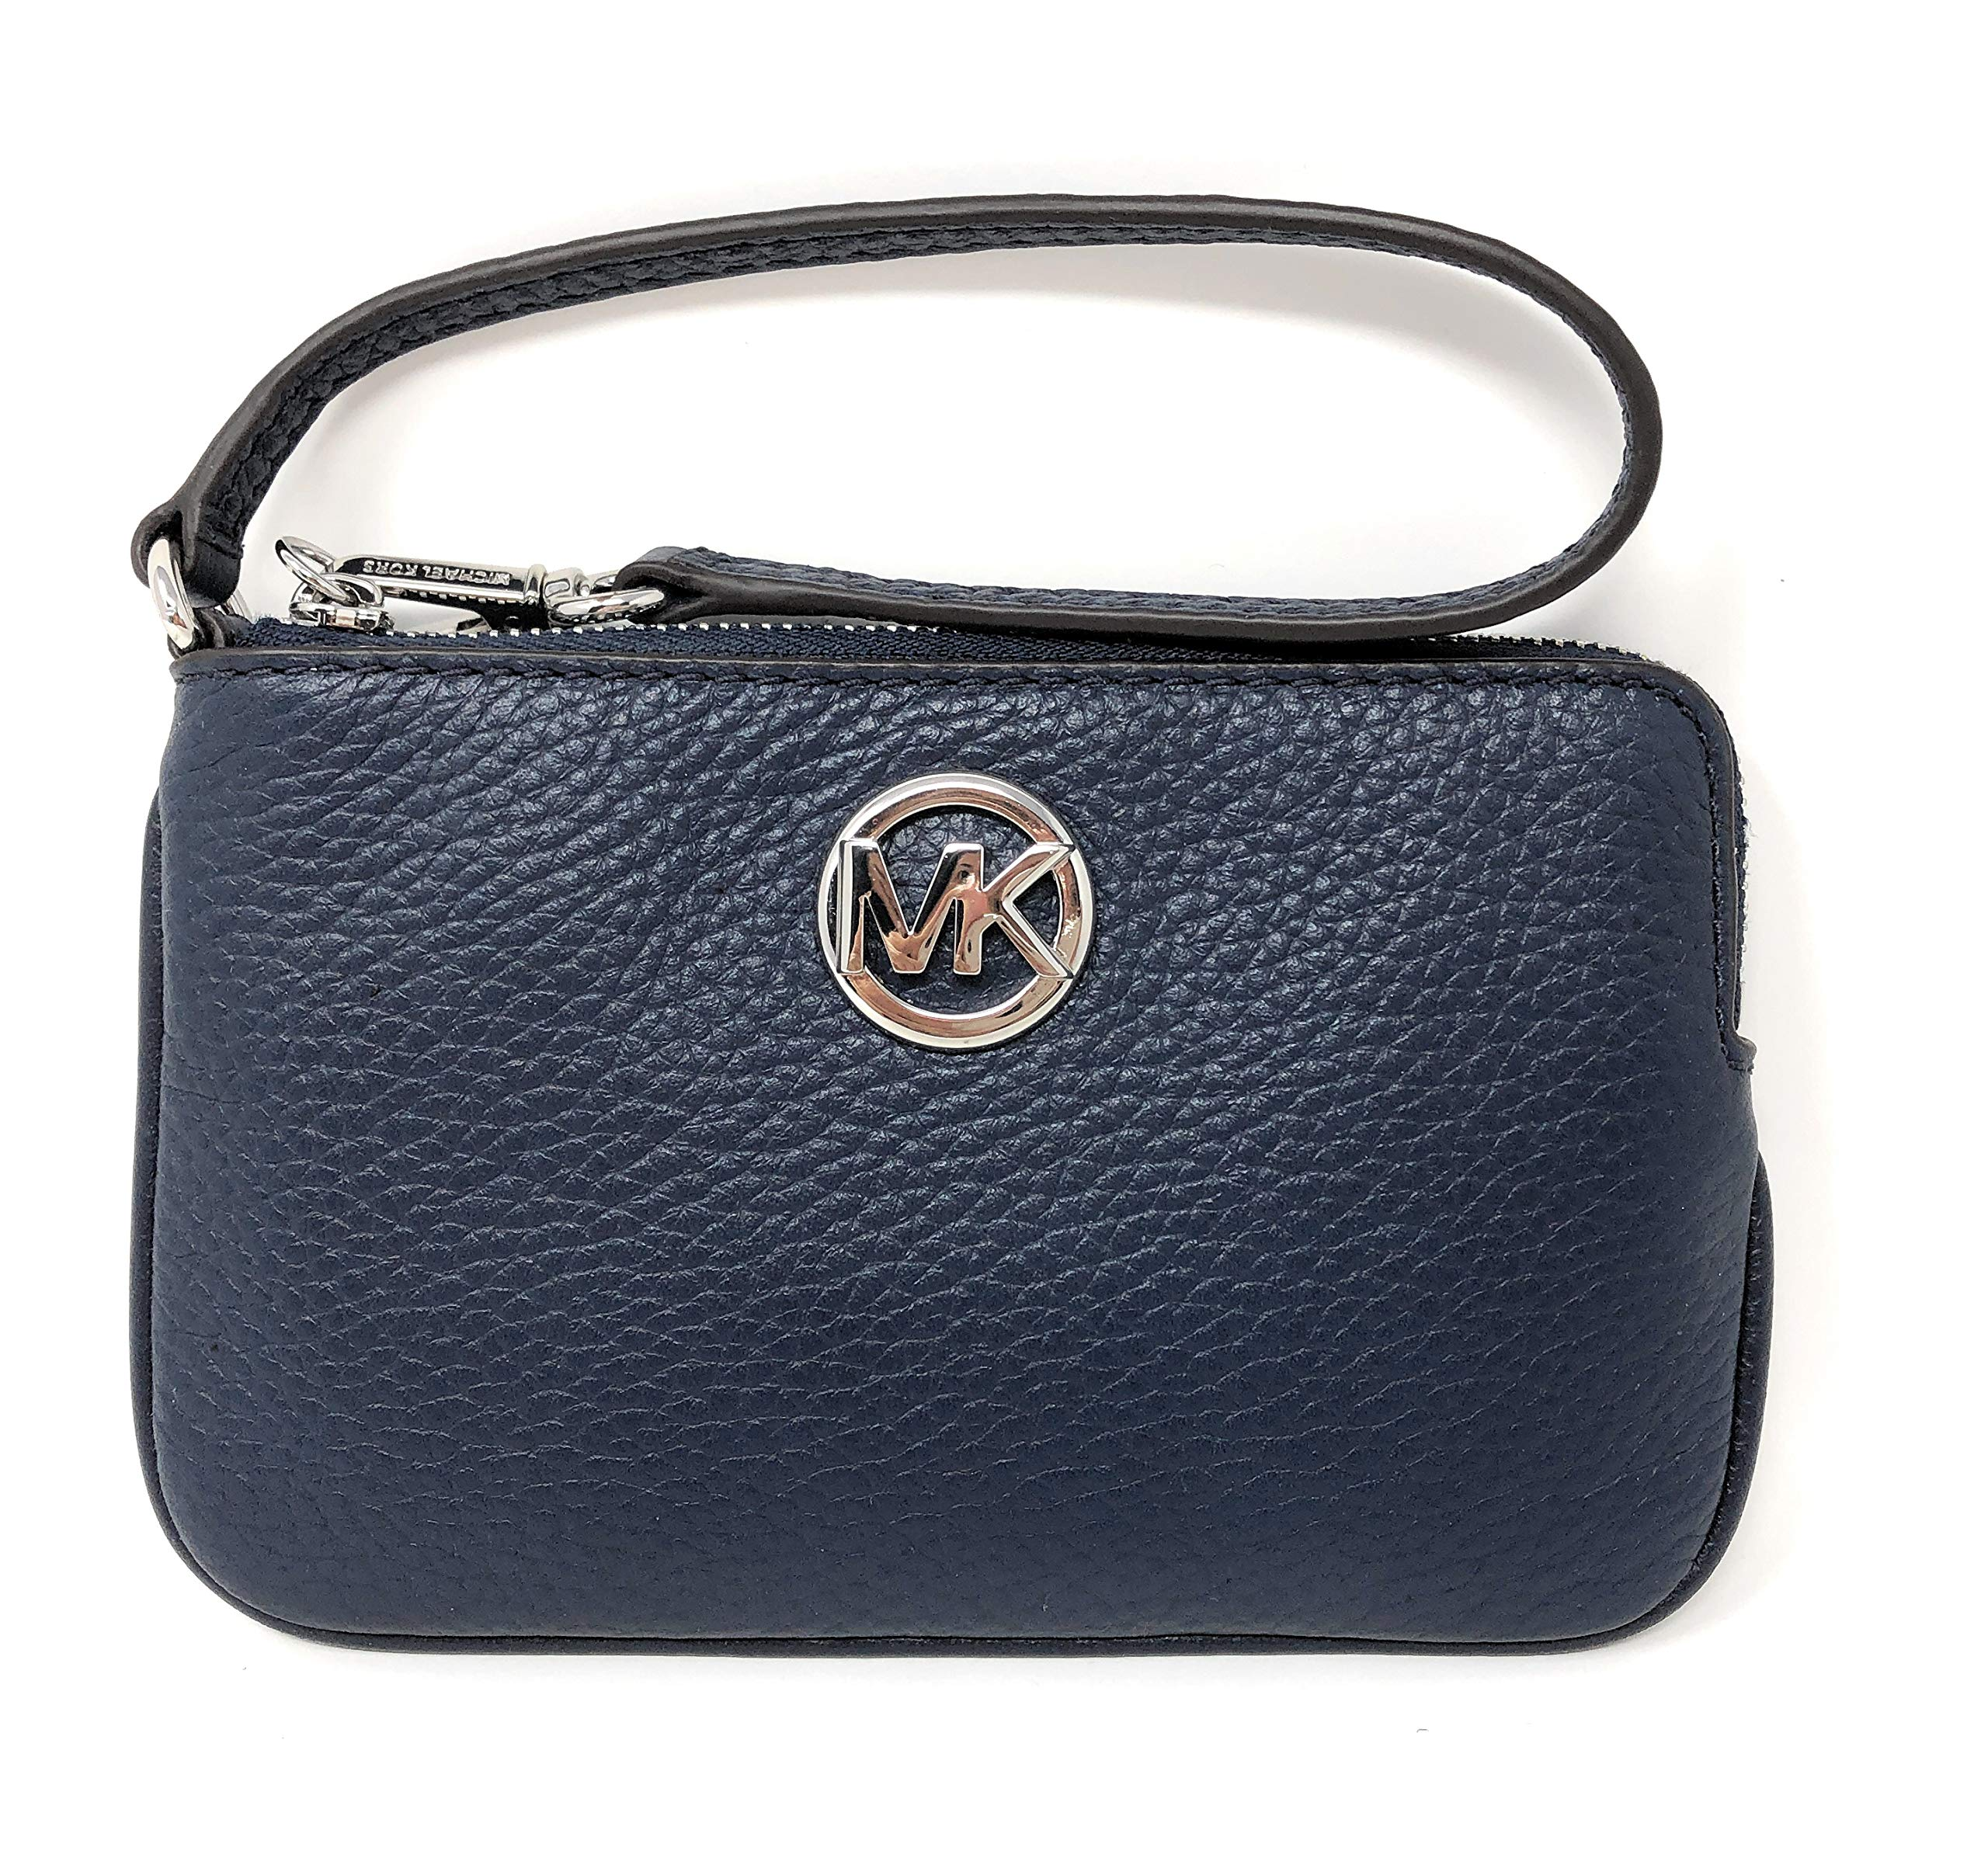 Micheal Kors Fulton Top Zip Pebble Leather Wristlet Purse in Navy by Michael Kors